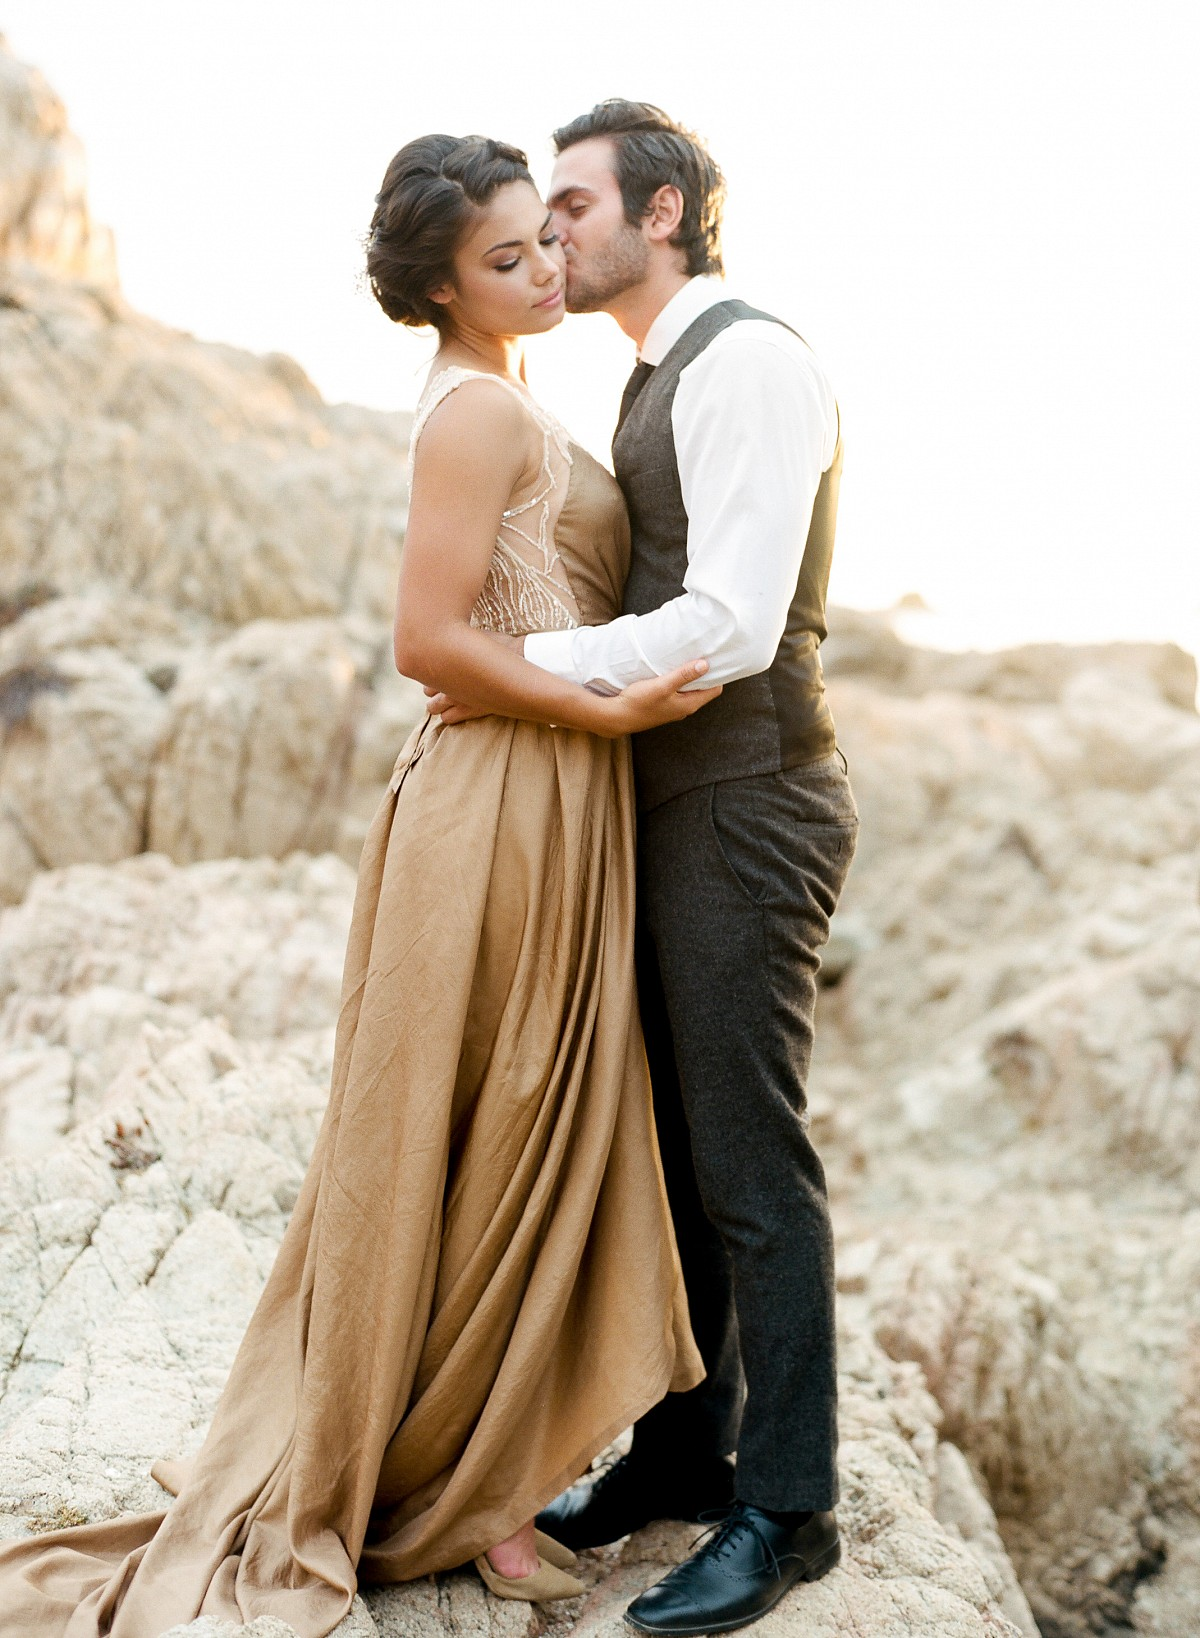 Coastal Couples Session Inspiration at Sunset